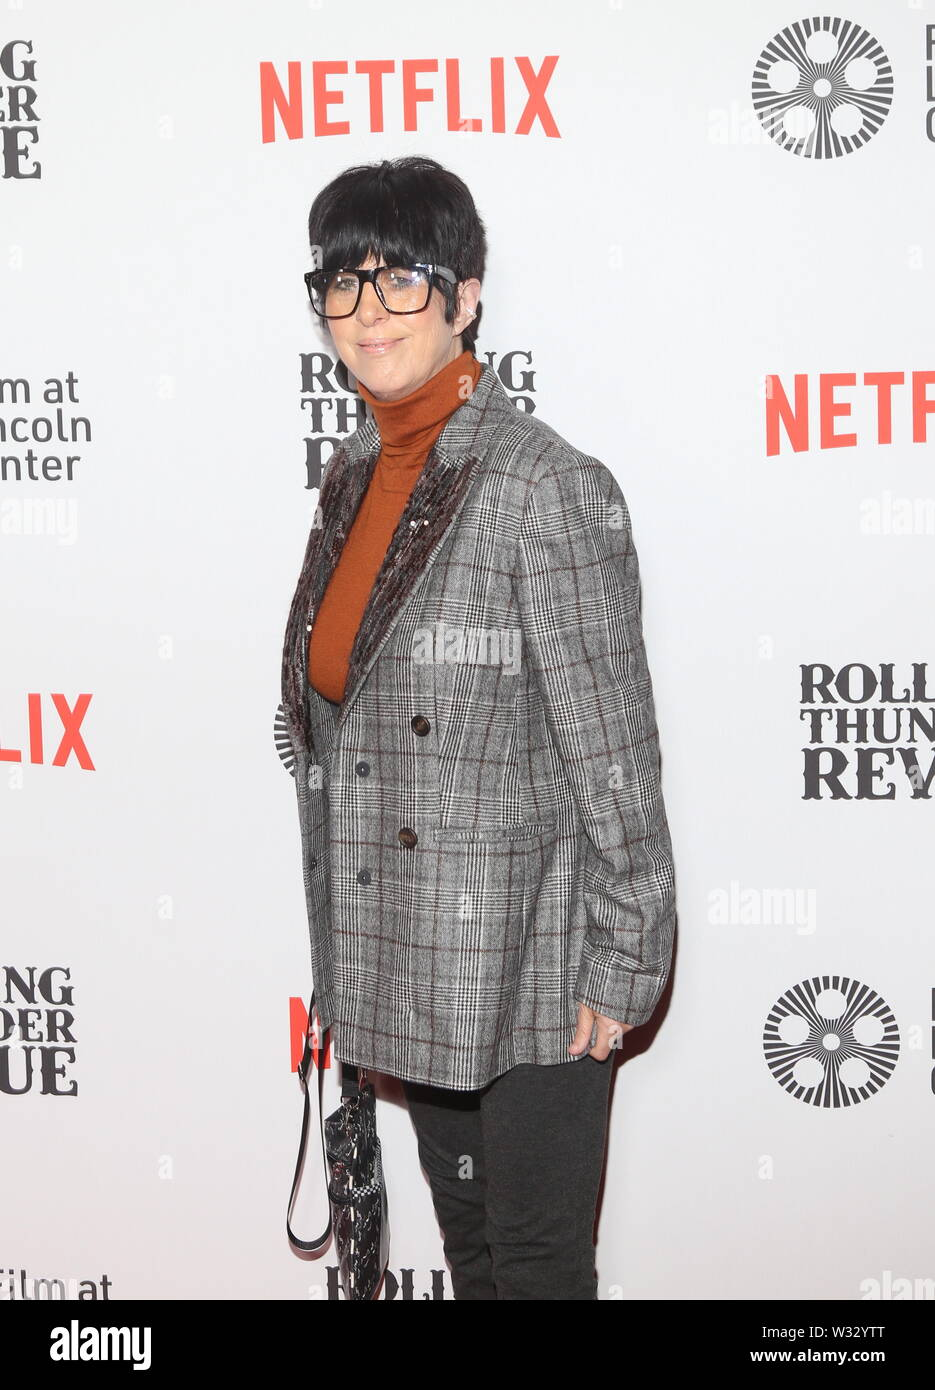 Netflix New York Special Screening of Rolling Thunder Revue: A Bob Dylan Story Held at Alice Tully Hall Featuring: Diane Warren Where: New York, New York, United States When: 11 Jun 2019 Credit: Derrick Salters/WENN.com - Stock Image